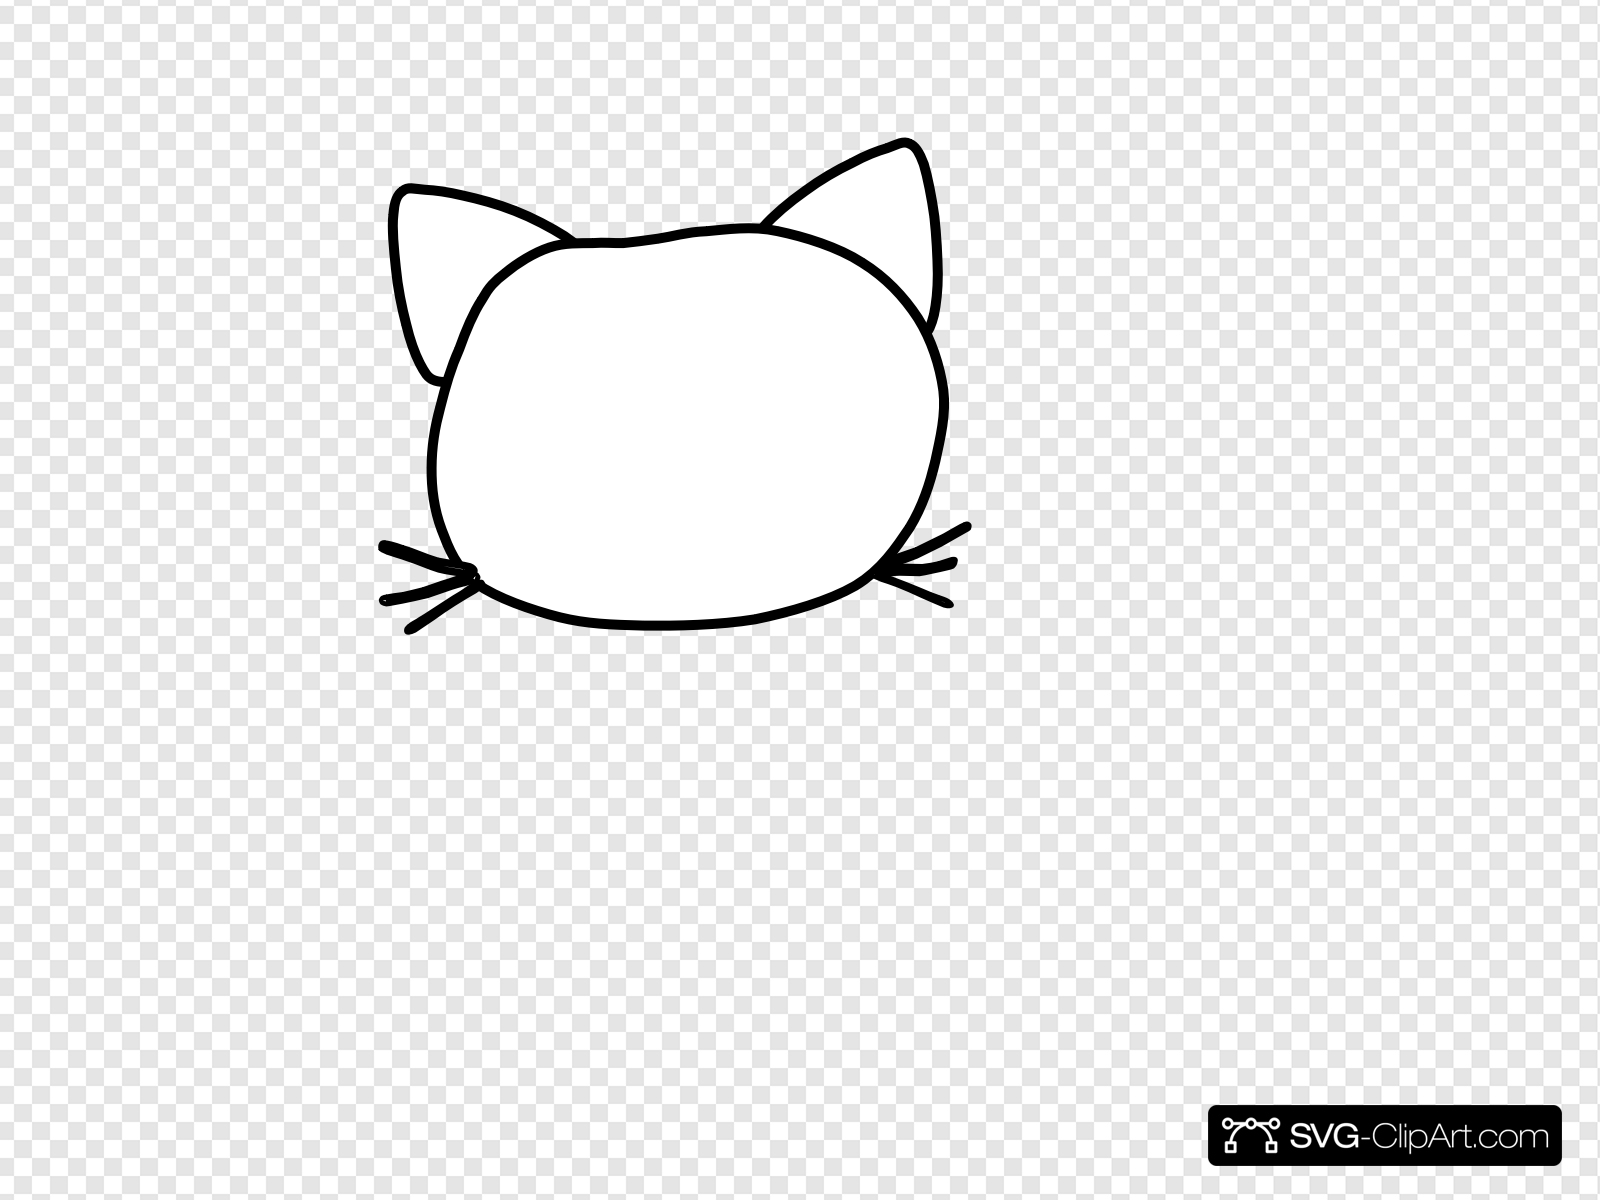 Cat Head Outline Clip art, Icon and SVG.